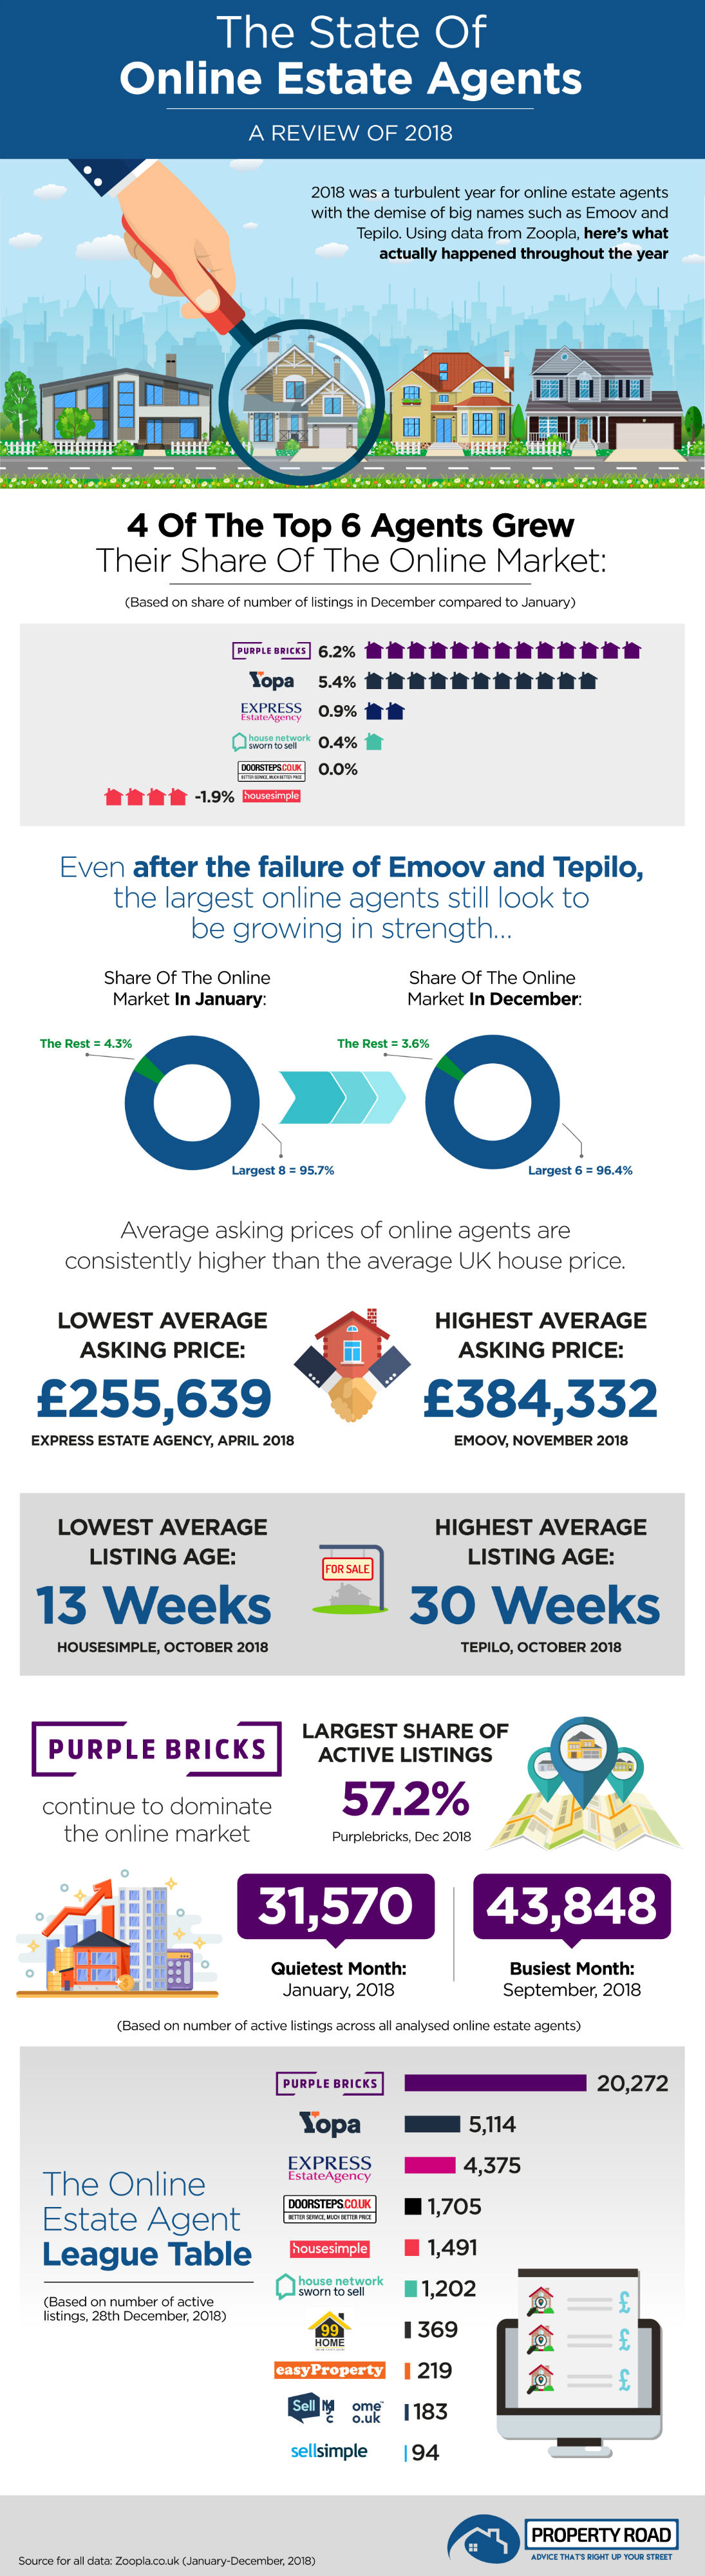 The State Of Online Estate Agents Infographic